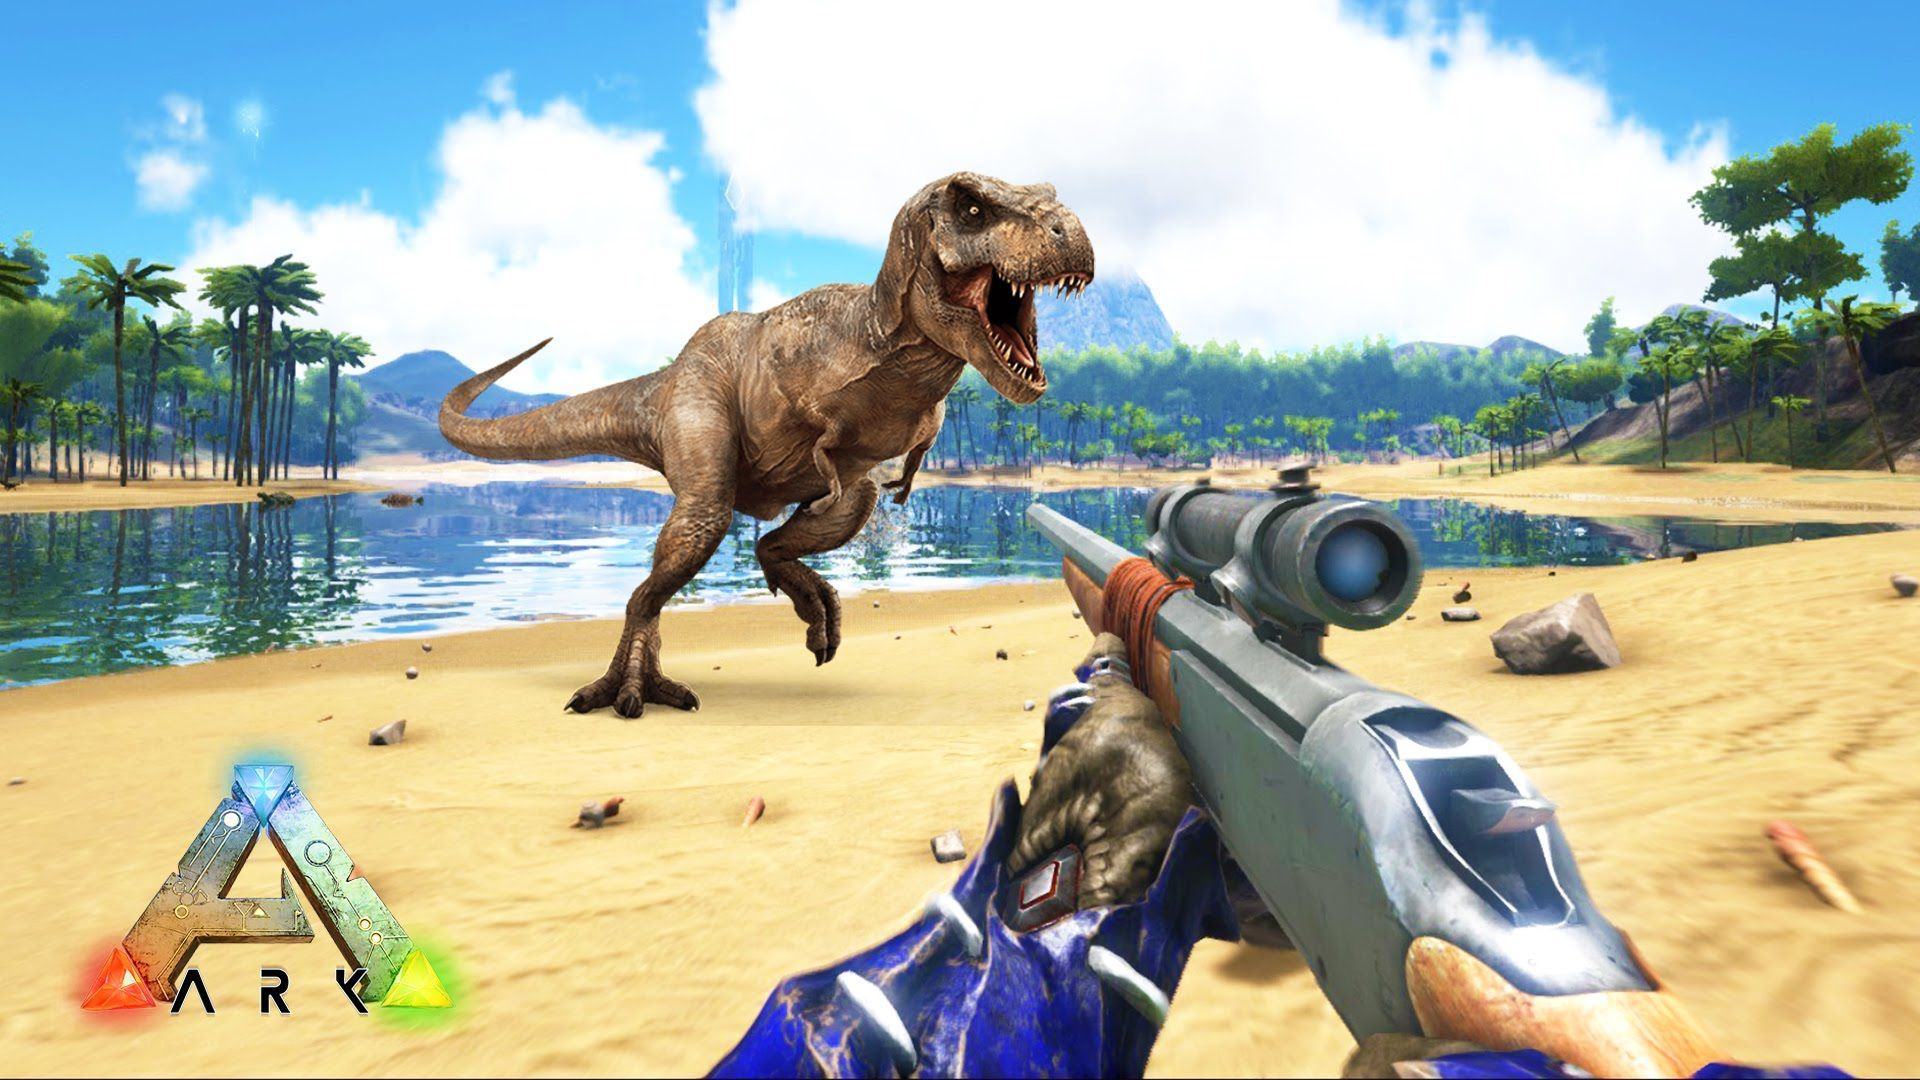 Ark survival evolved sniper rifle hunting dinosaurs ark ark survival evolved sniper rifle hunting dinosaurs ark survival e malvernweather Gallery